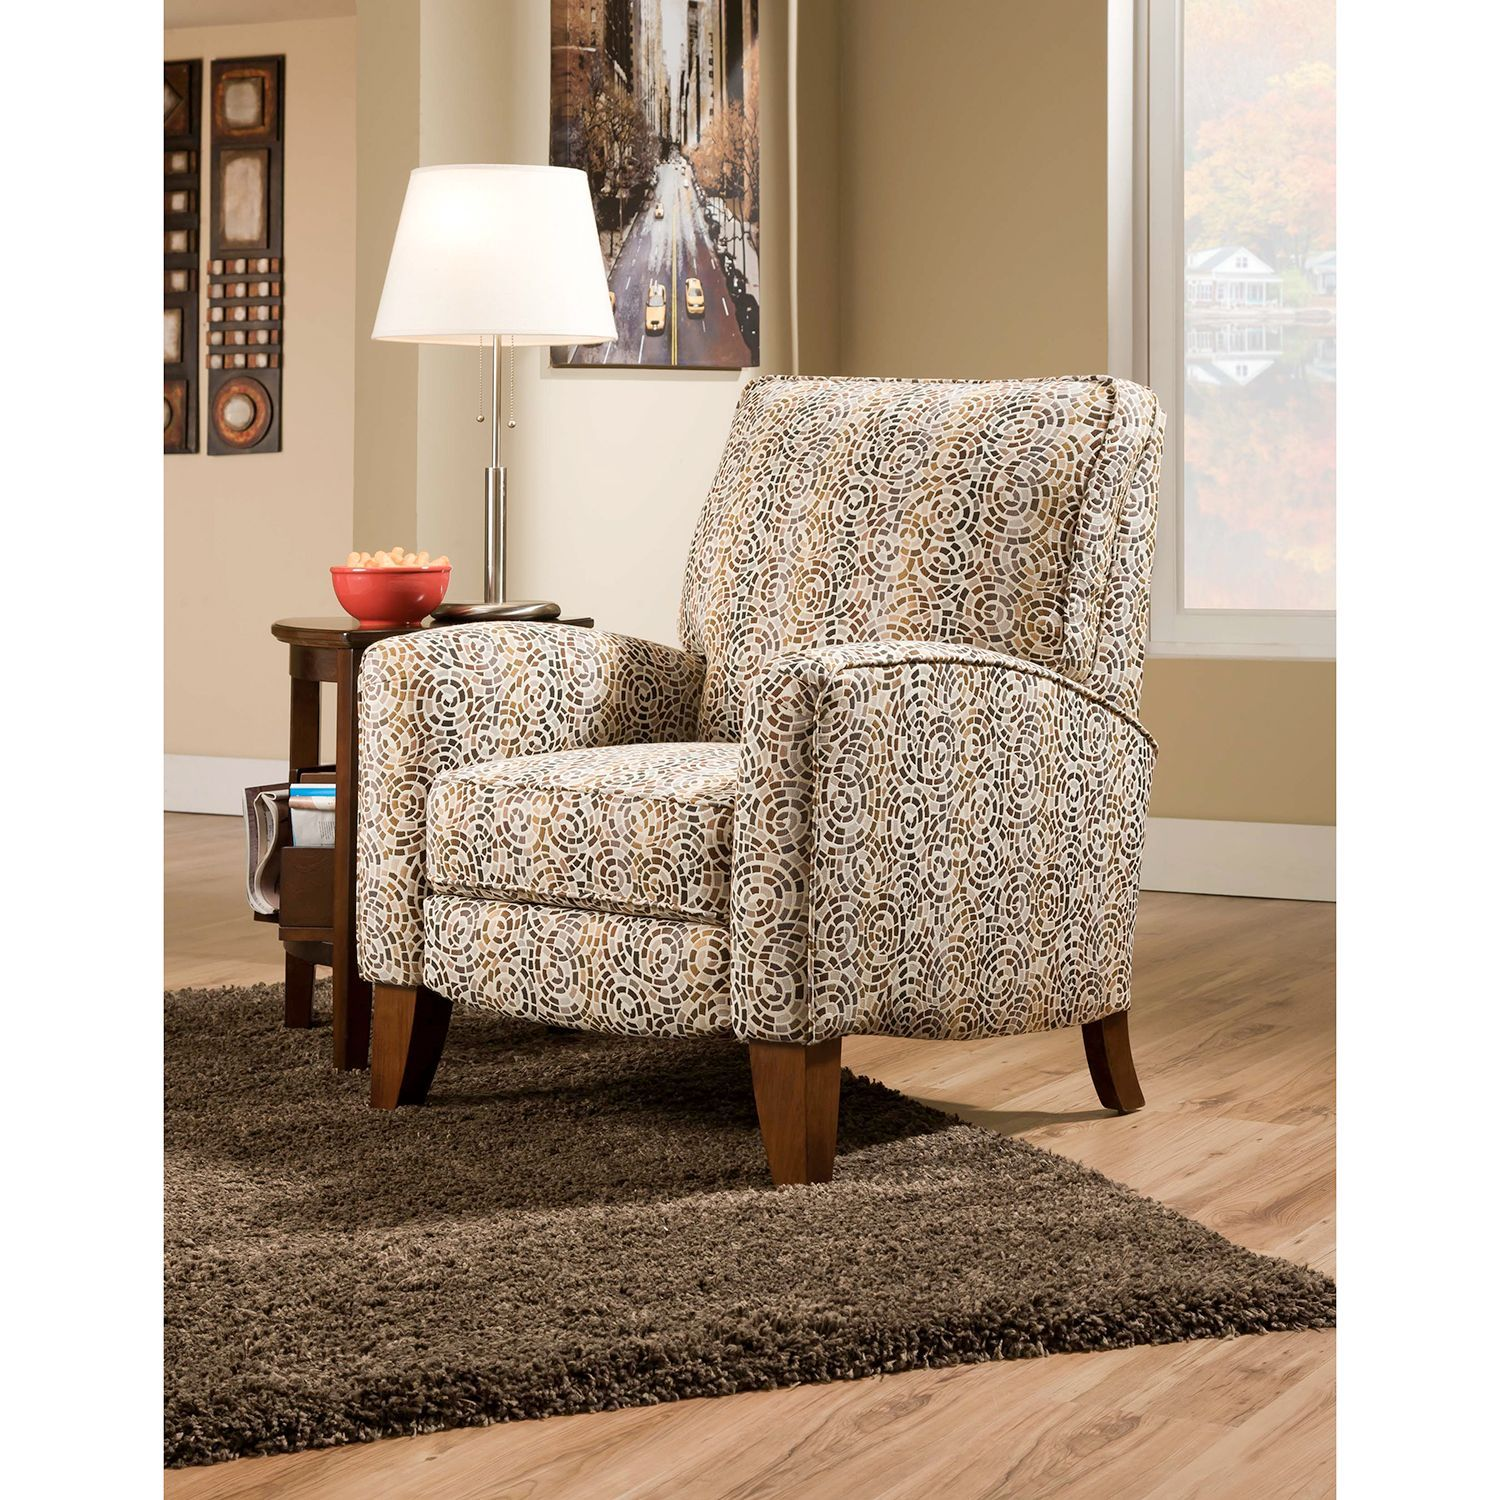 Gabbie Push Back Recliner  sc 1 st  Pinterest : push back recliner chairs - islam-shia.org